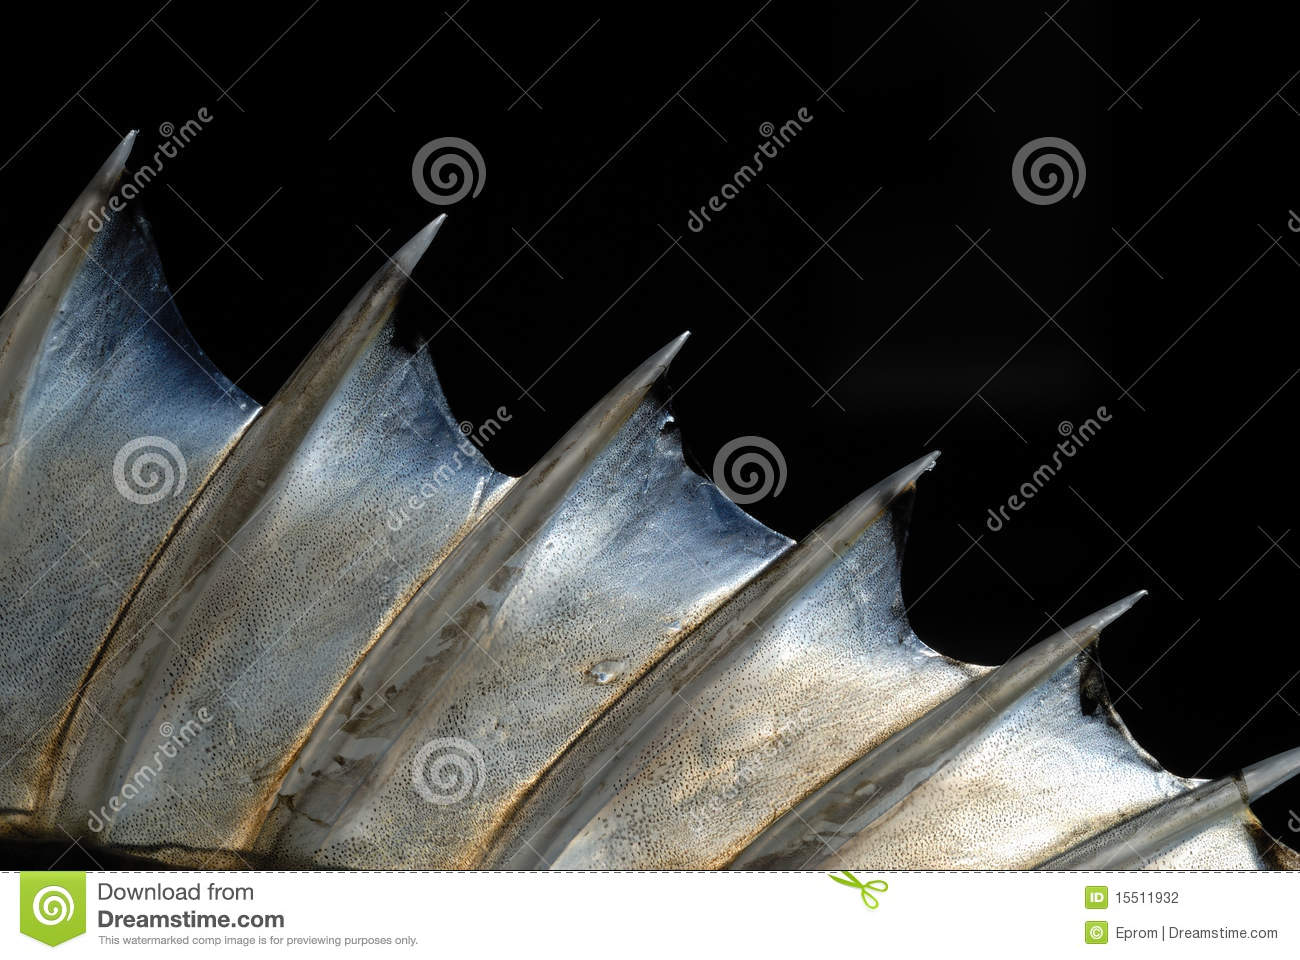 fish fin stock photography image 15511932 fungi clipart black and white fungi clipart black and white